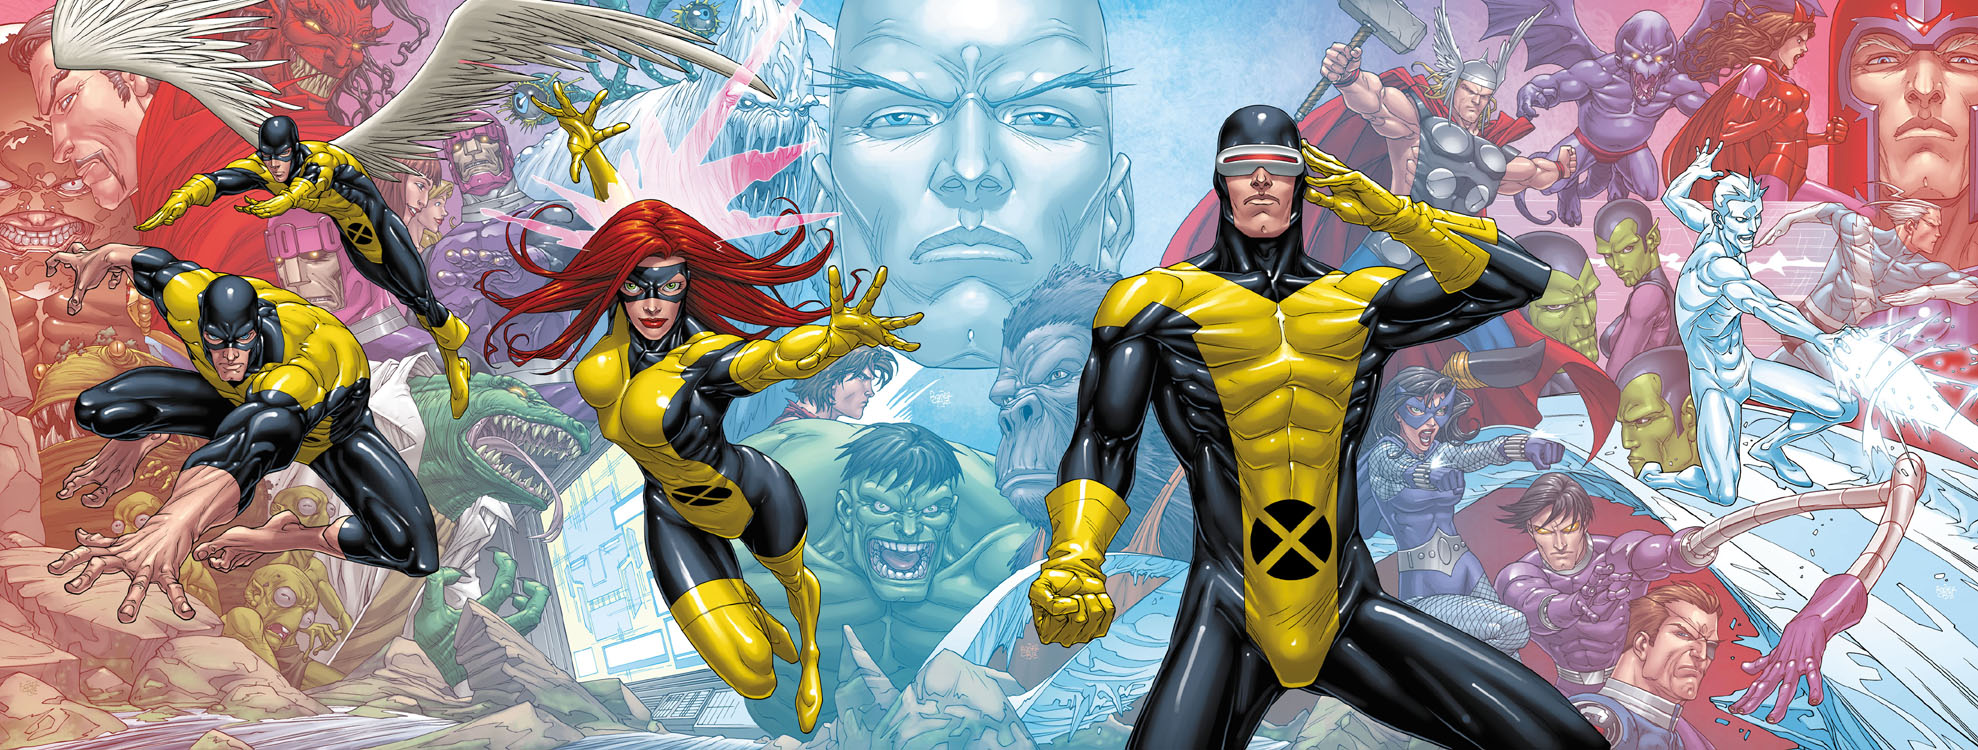 X men first class finals cover by valstaples